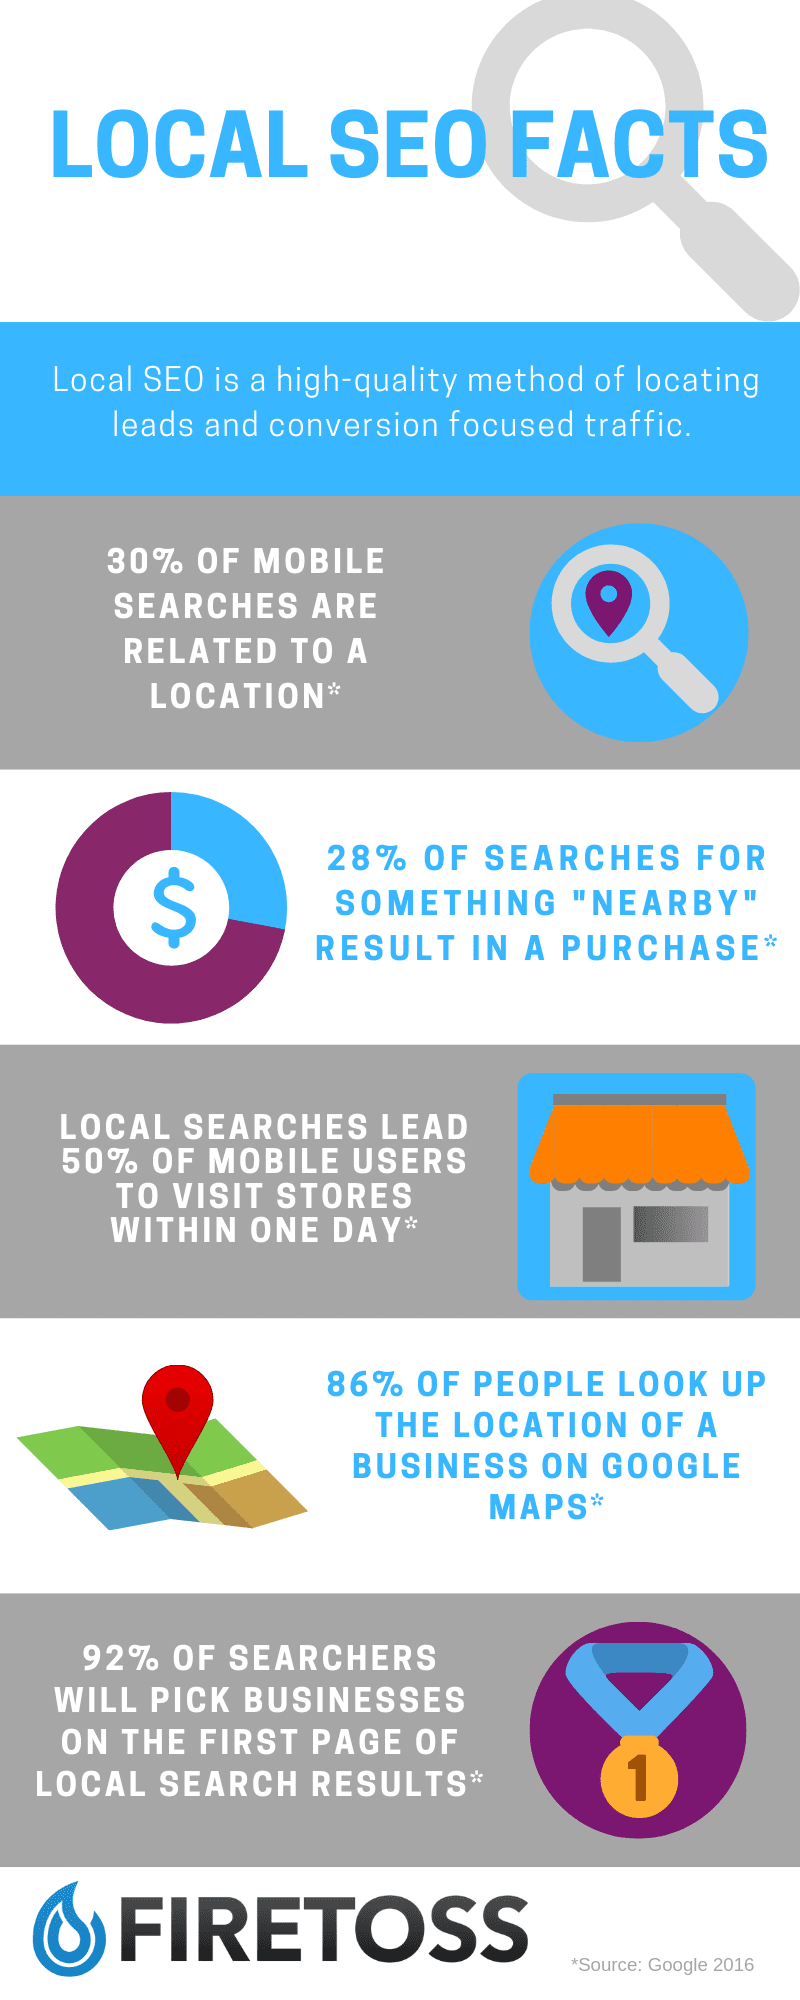 Local SEO guide facts infographic